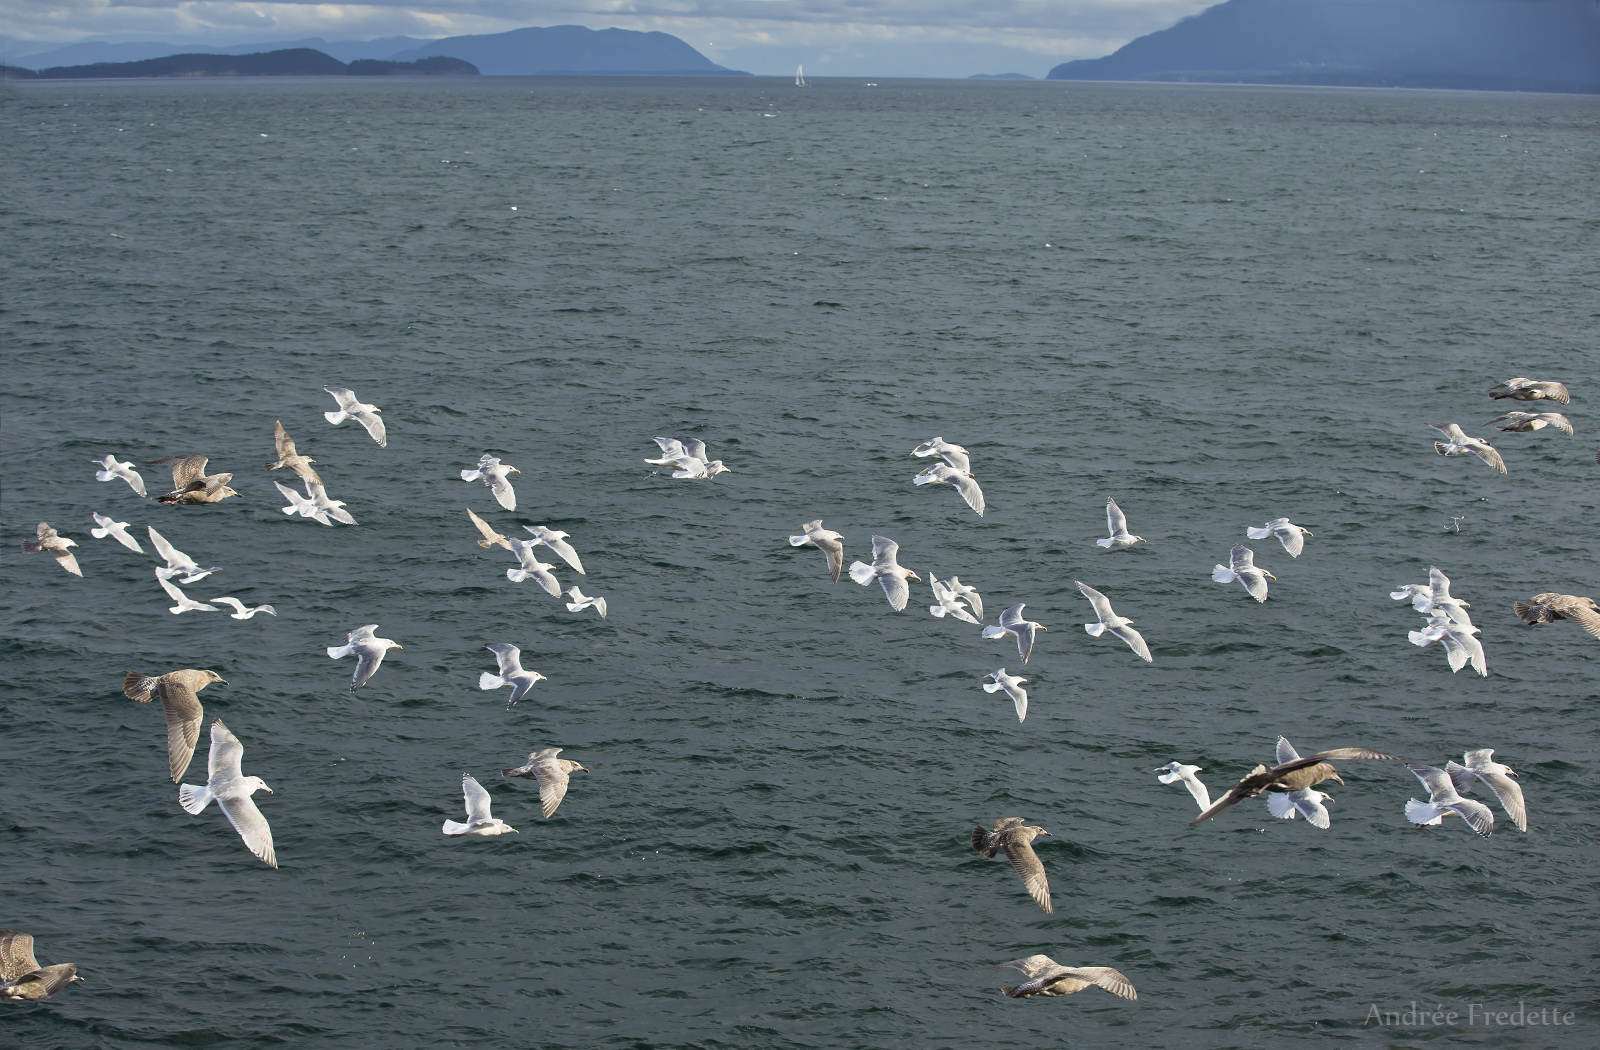 Gull in flight at East Point, Saturna Island, BC. Photo by Andrée Fredette